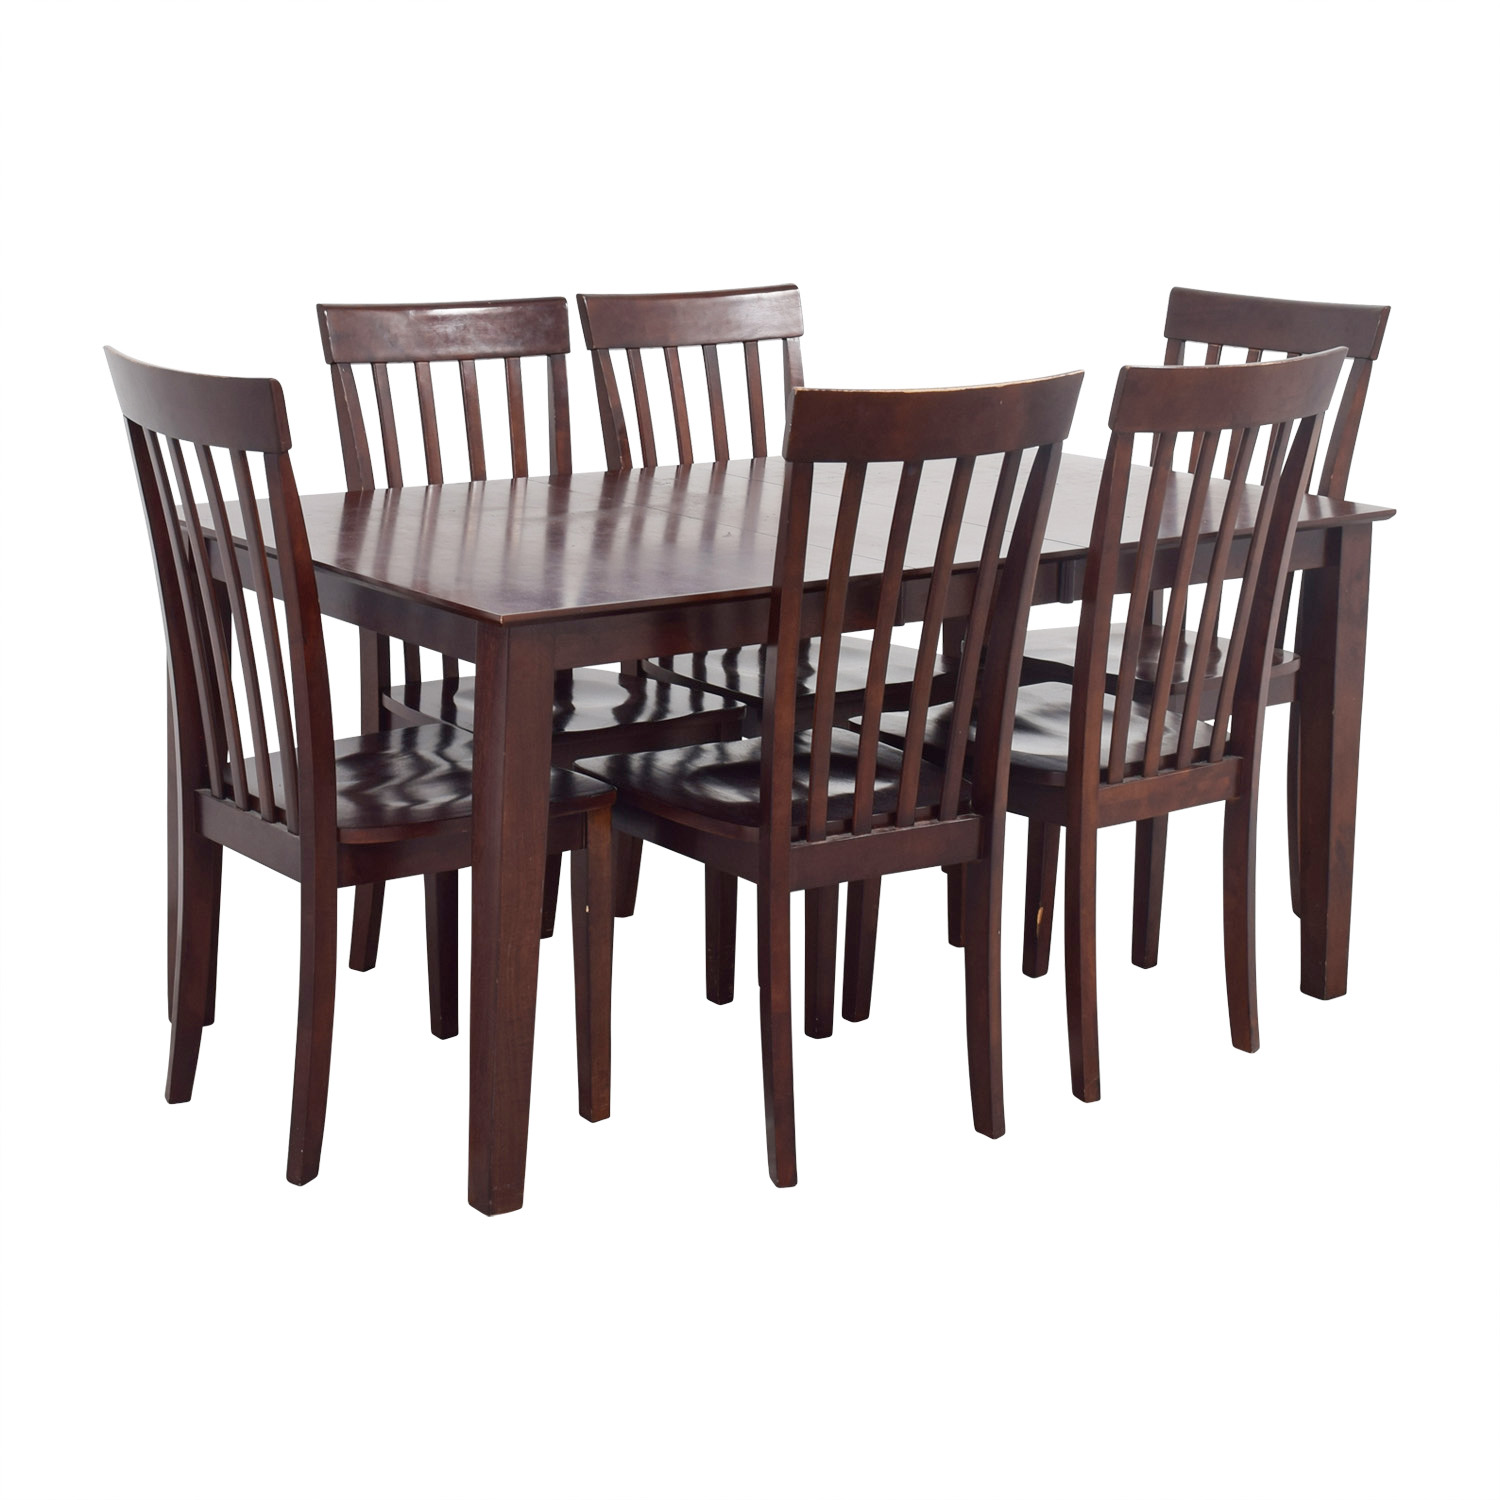 89 Off Bob S Discount Furniture Bob S Furniture Dining Room Table And Chairs Tables